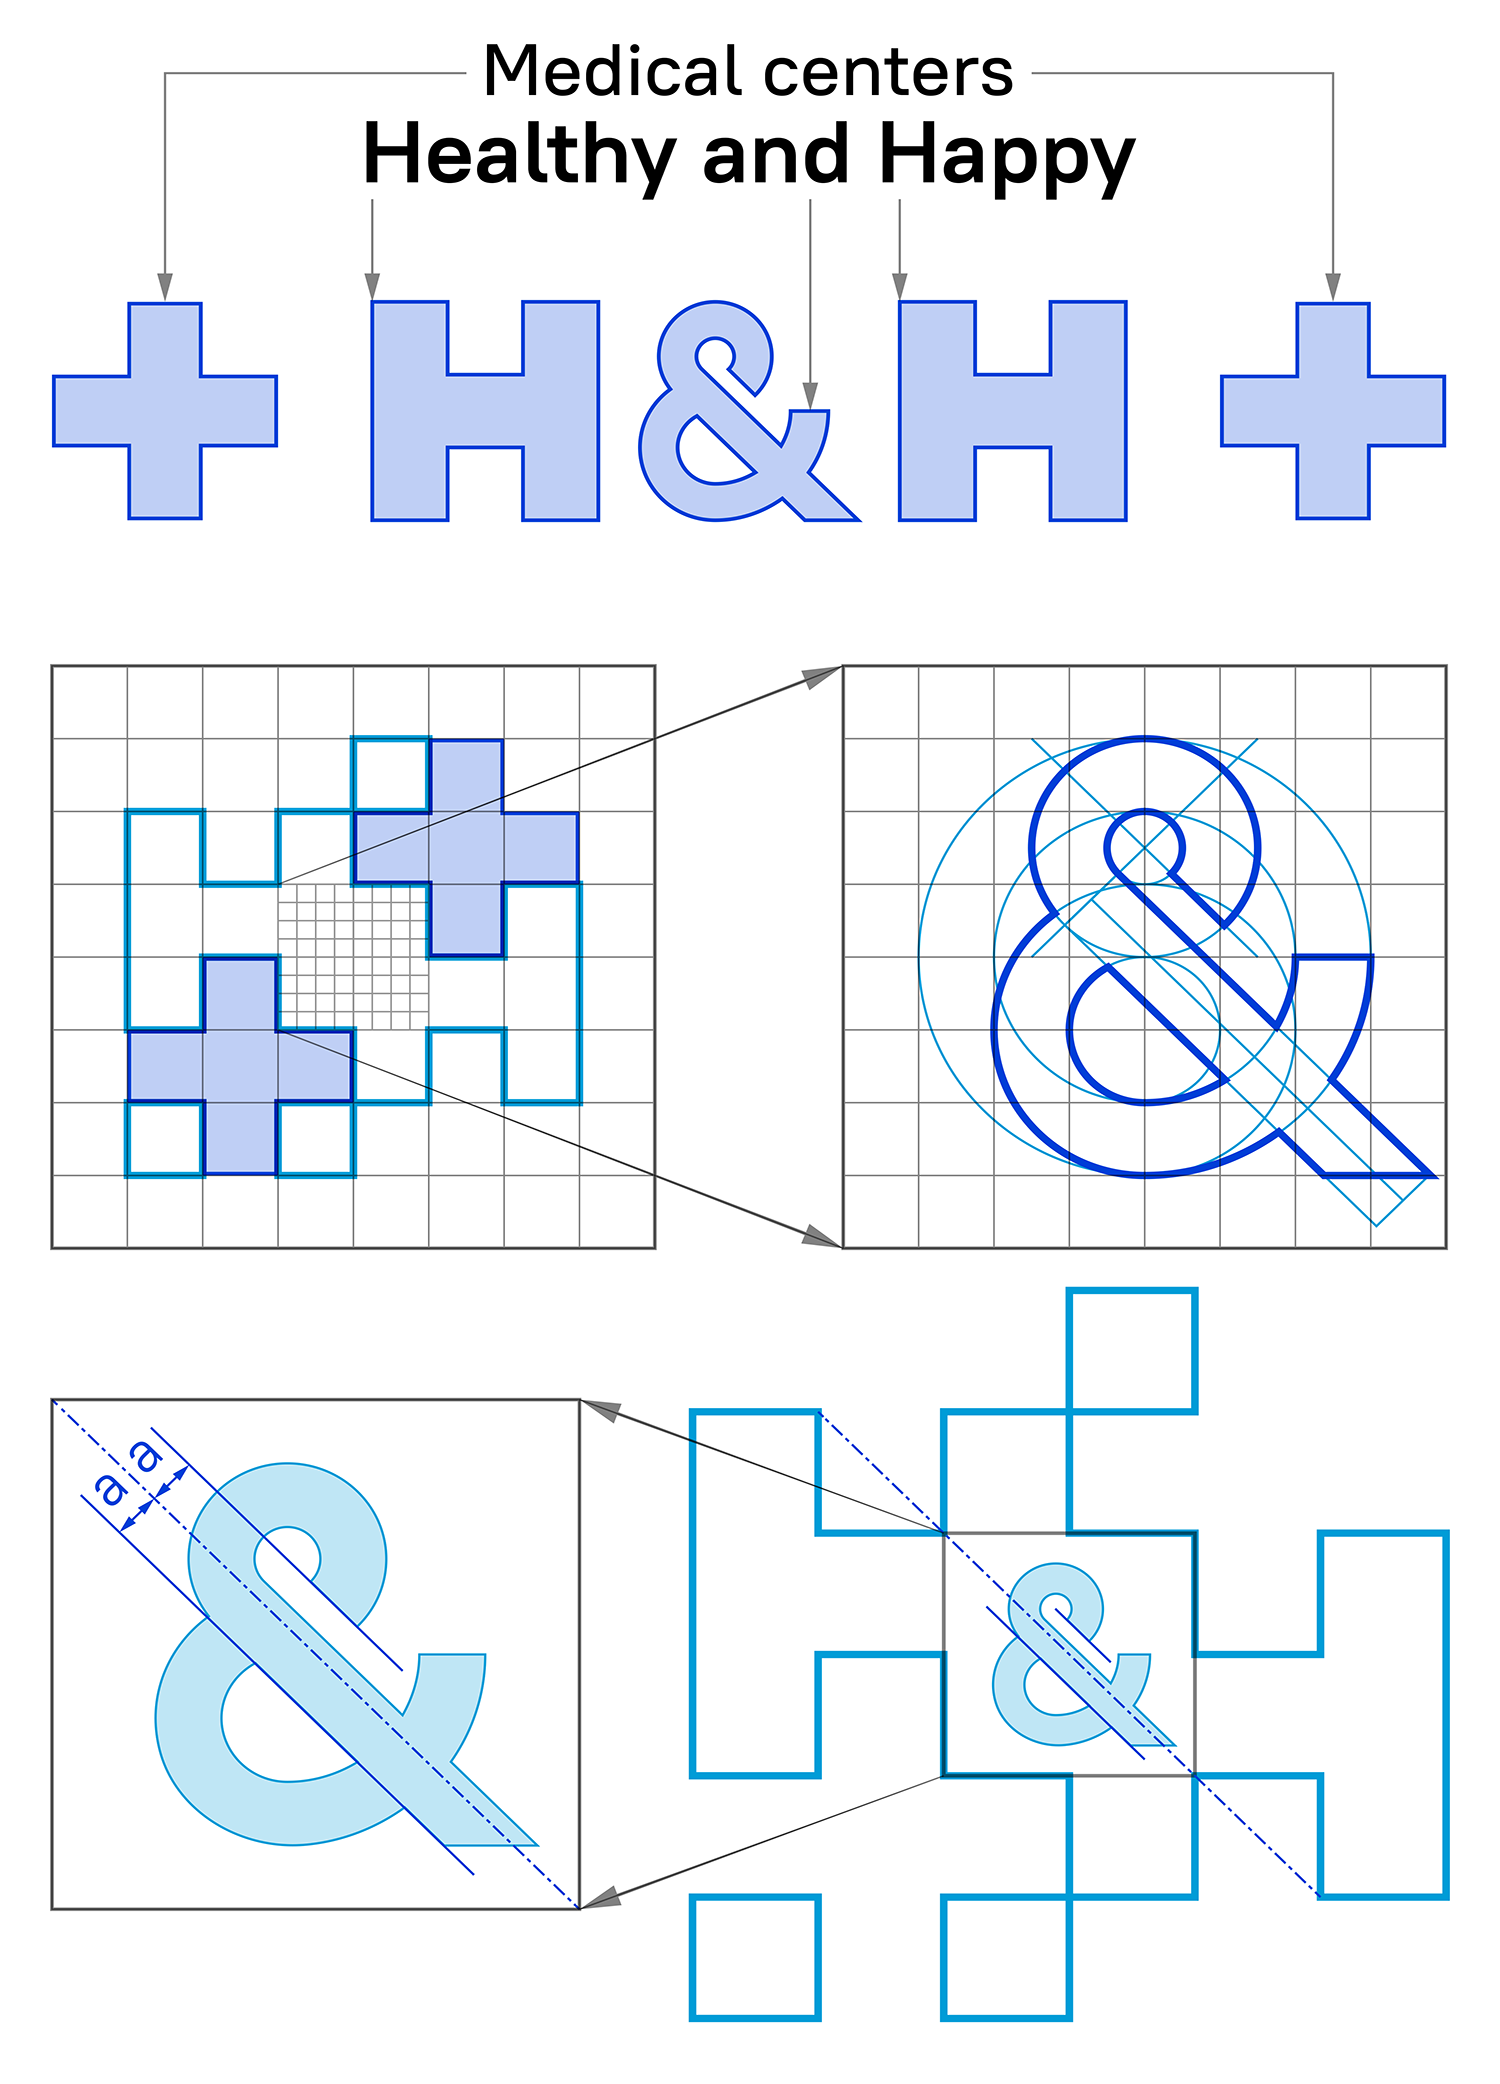 The idea of the logo for Healthy and Happy medical centers. Creating the logo on the modular grid.